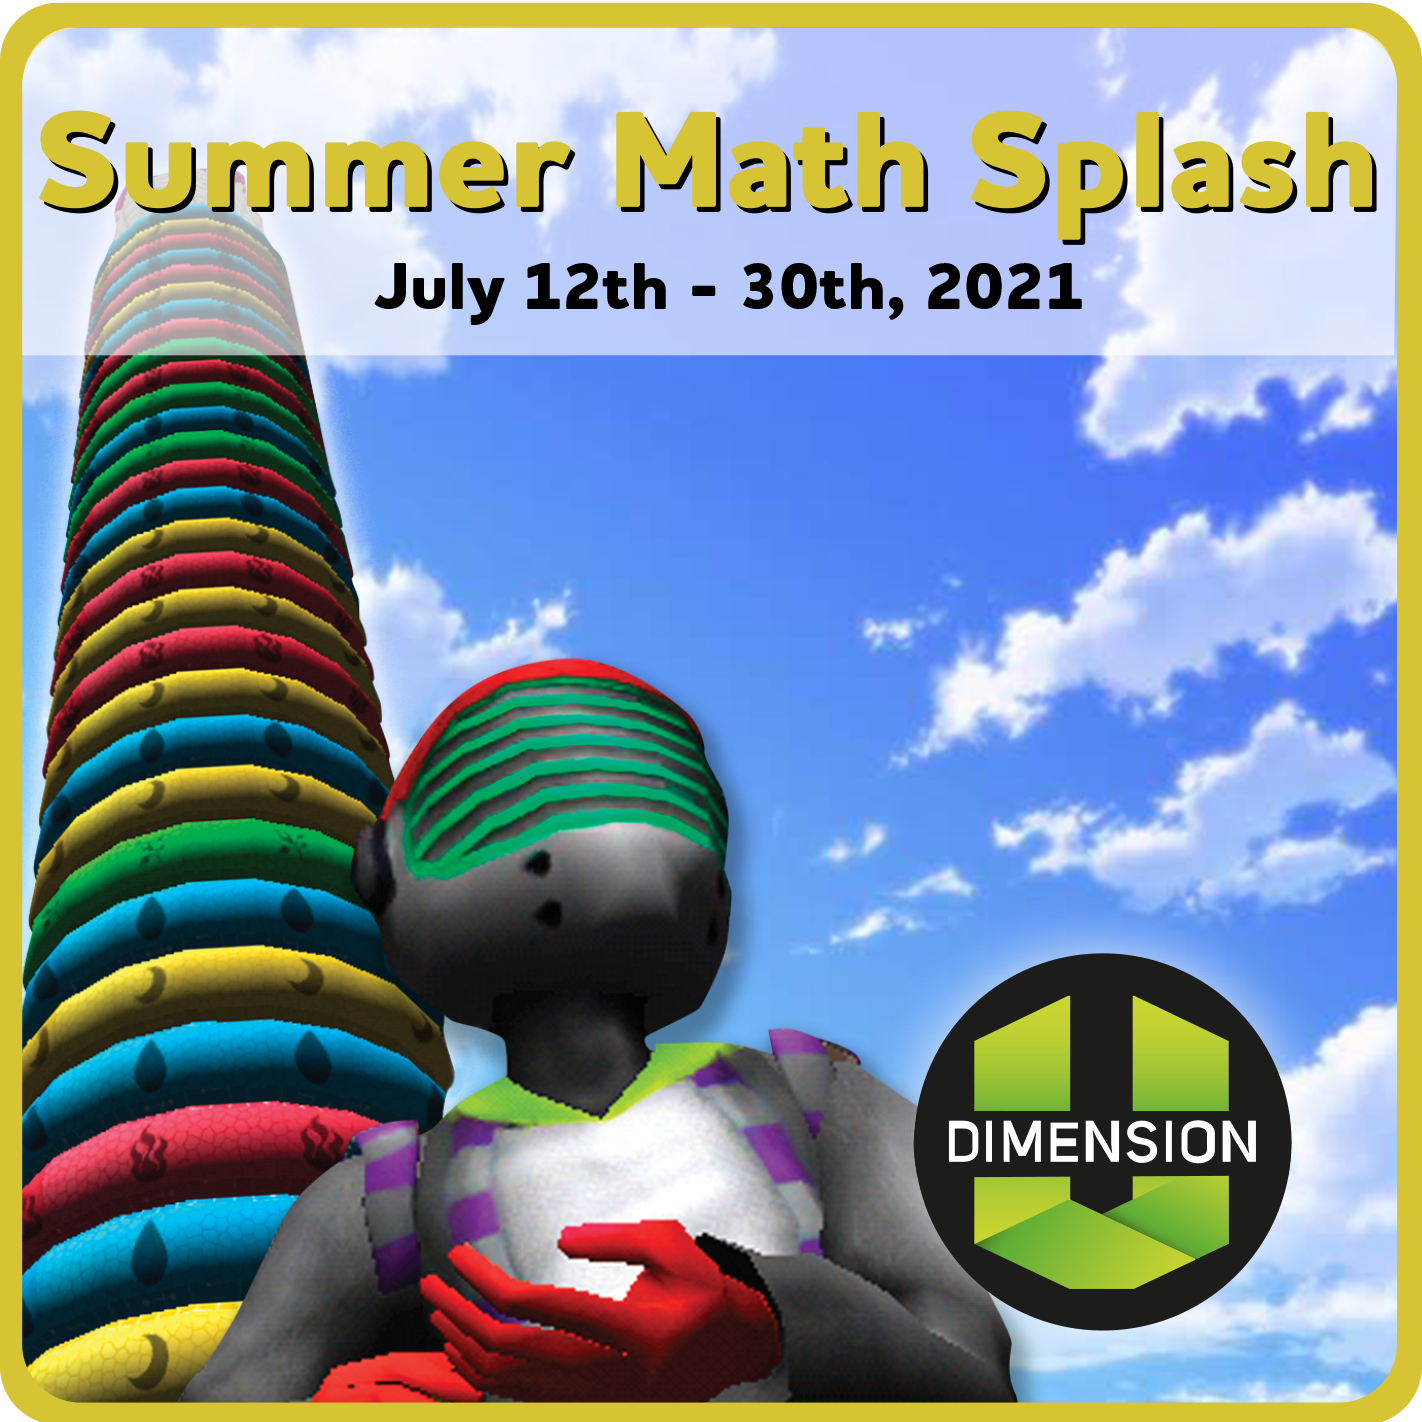 Summer Math Splash